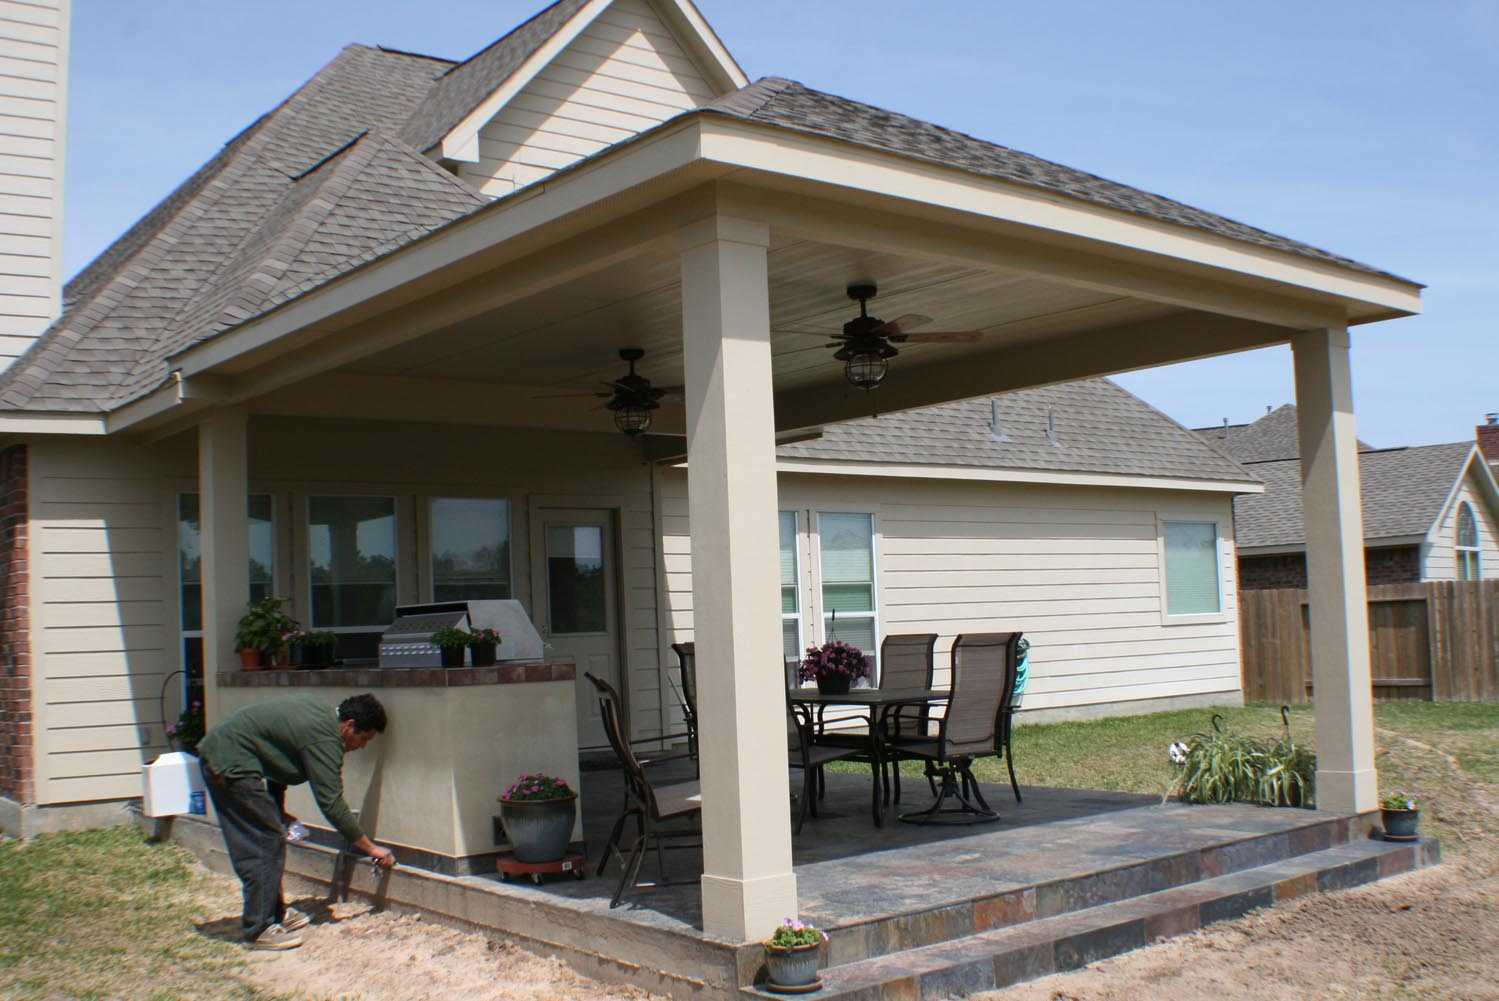 16 by 20 Patio Cover + Outdoor Kitchen - HHI Patio Covers on Backyard Patio Cover Ideas  id=94925